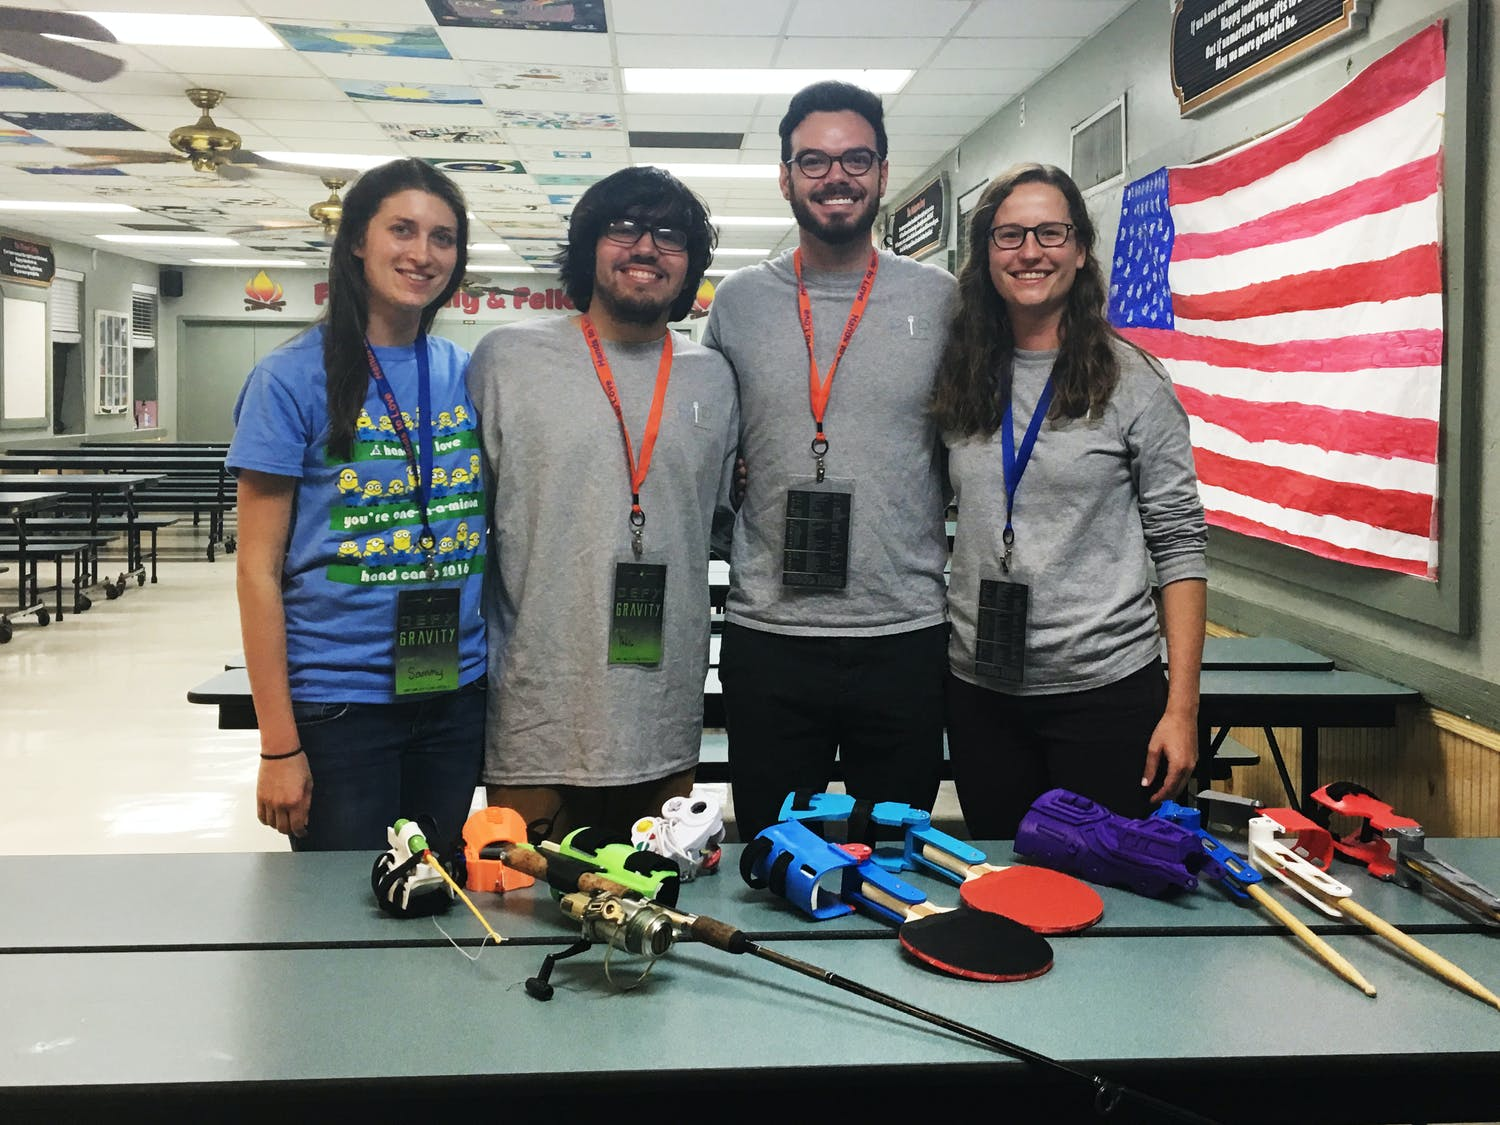 Members of UF GRiP, a club that 3-D prints activity-specific prosthetics, pose with some of their newer models at Hand Camp 2017, a gathering of children with limb differences held from Friday to Sunday in Starke, Florida.